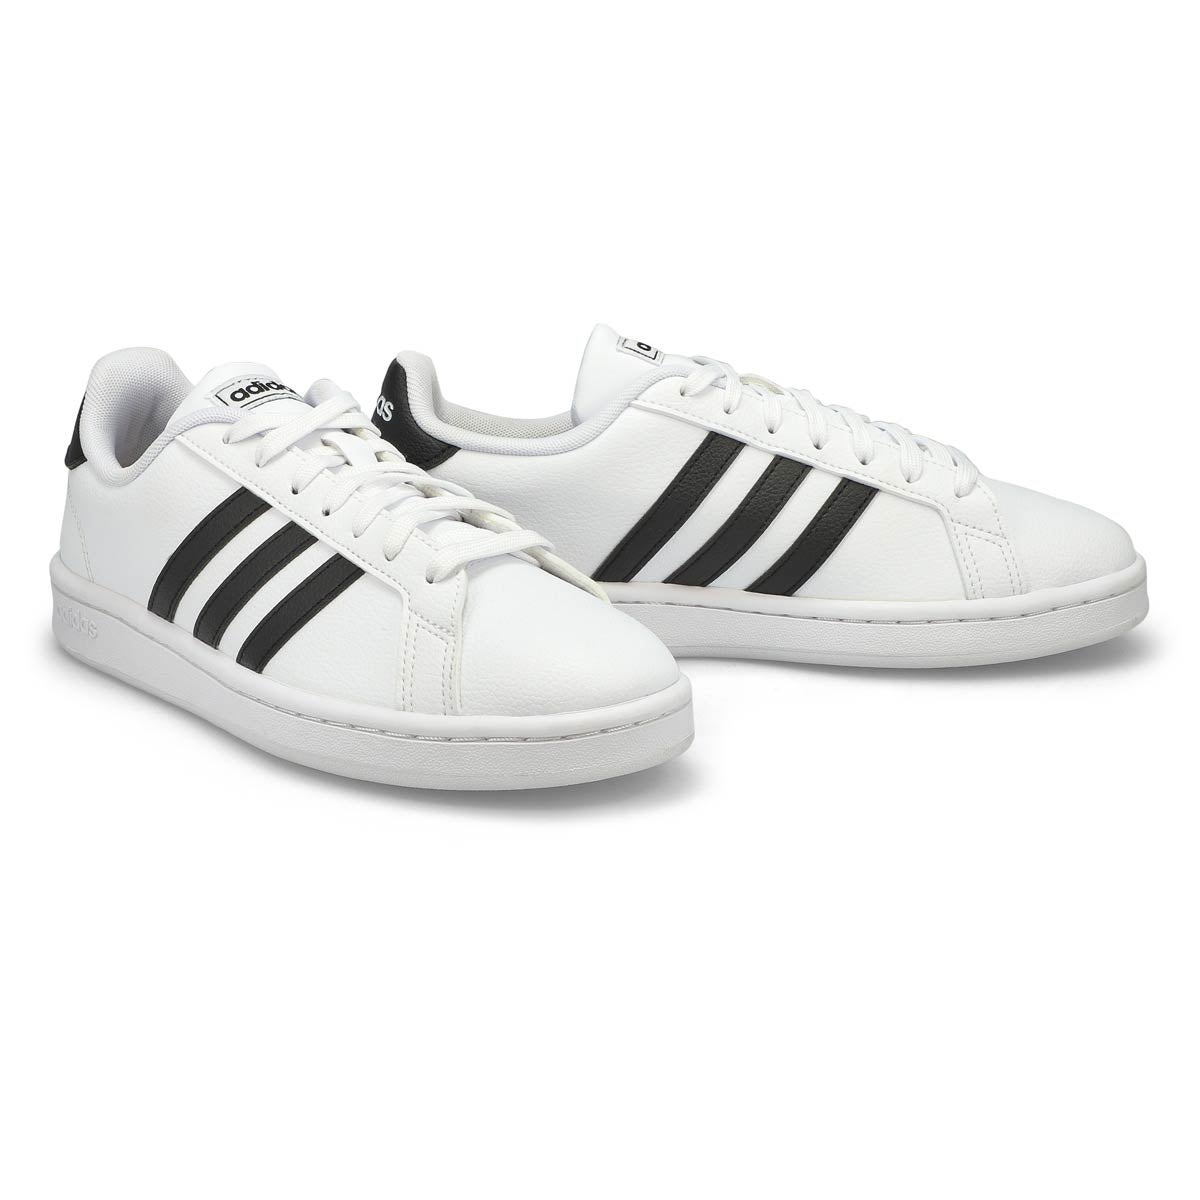 Women's GRAND COURT whiteblack sneaker